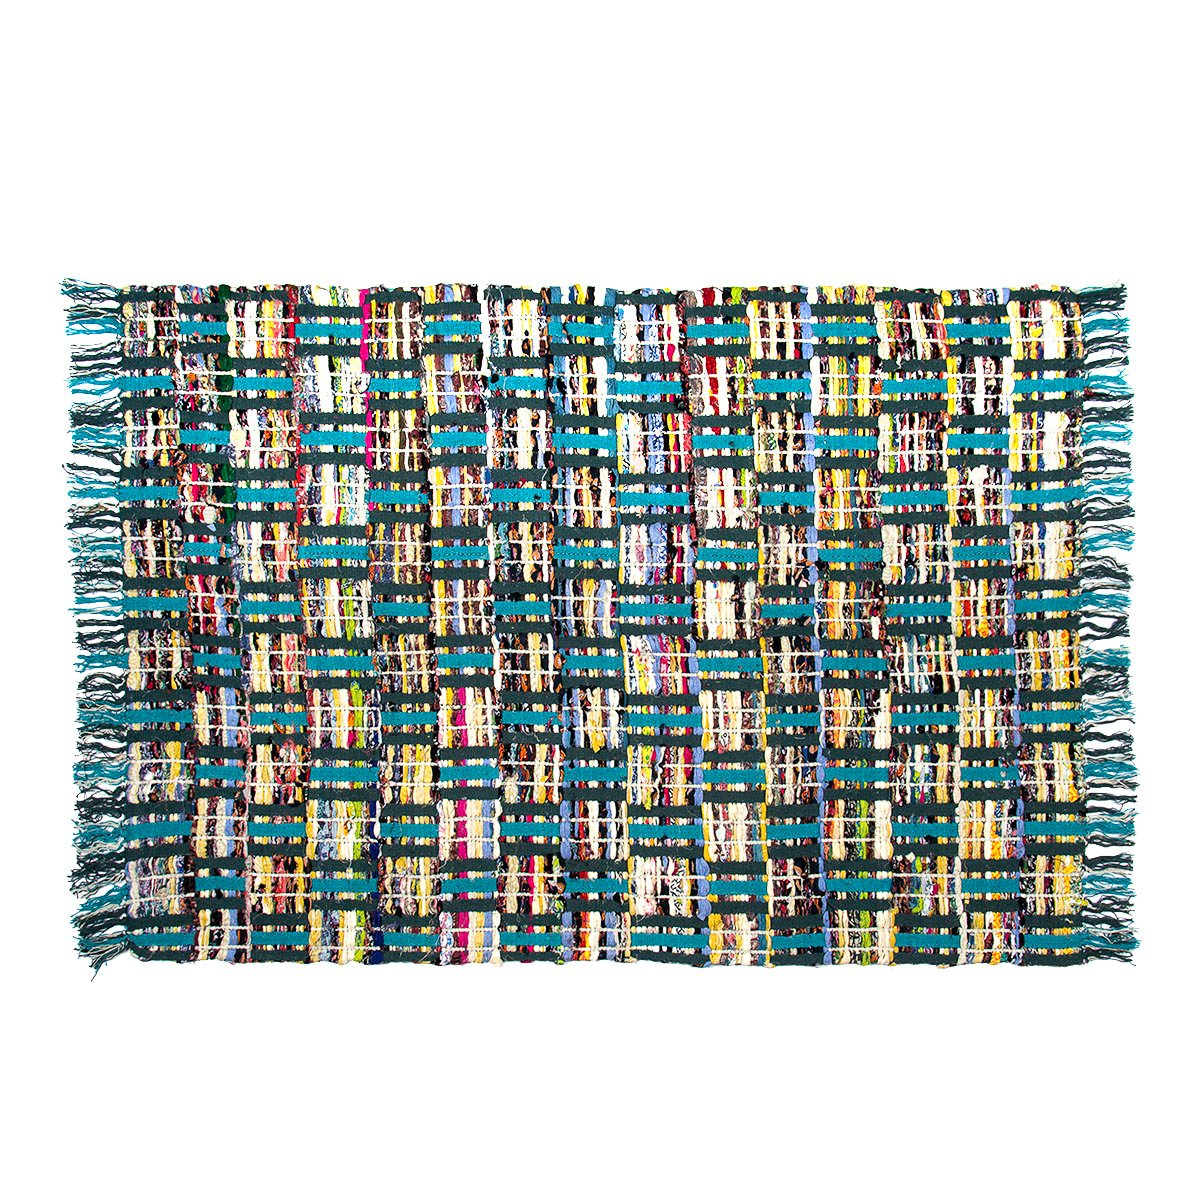 Sunrise Chindi 4×6 Area Rag Rugs Recycled Multi-Color Woven Fabric Casual for Home Decor Dorm Living Room Entryway Hardwood Bedroom